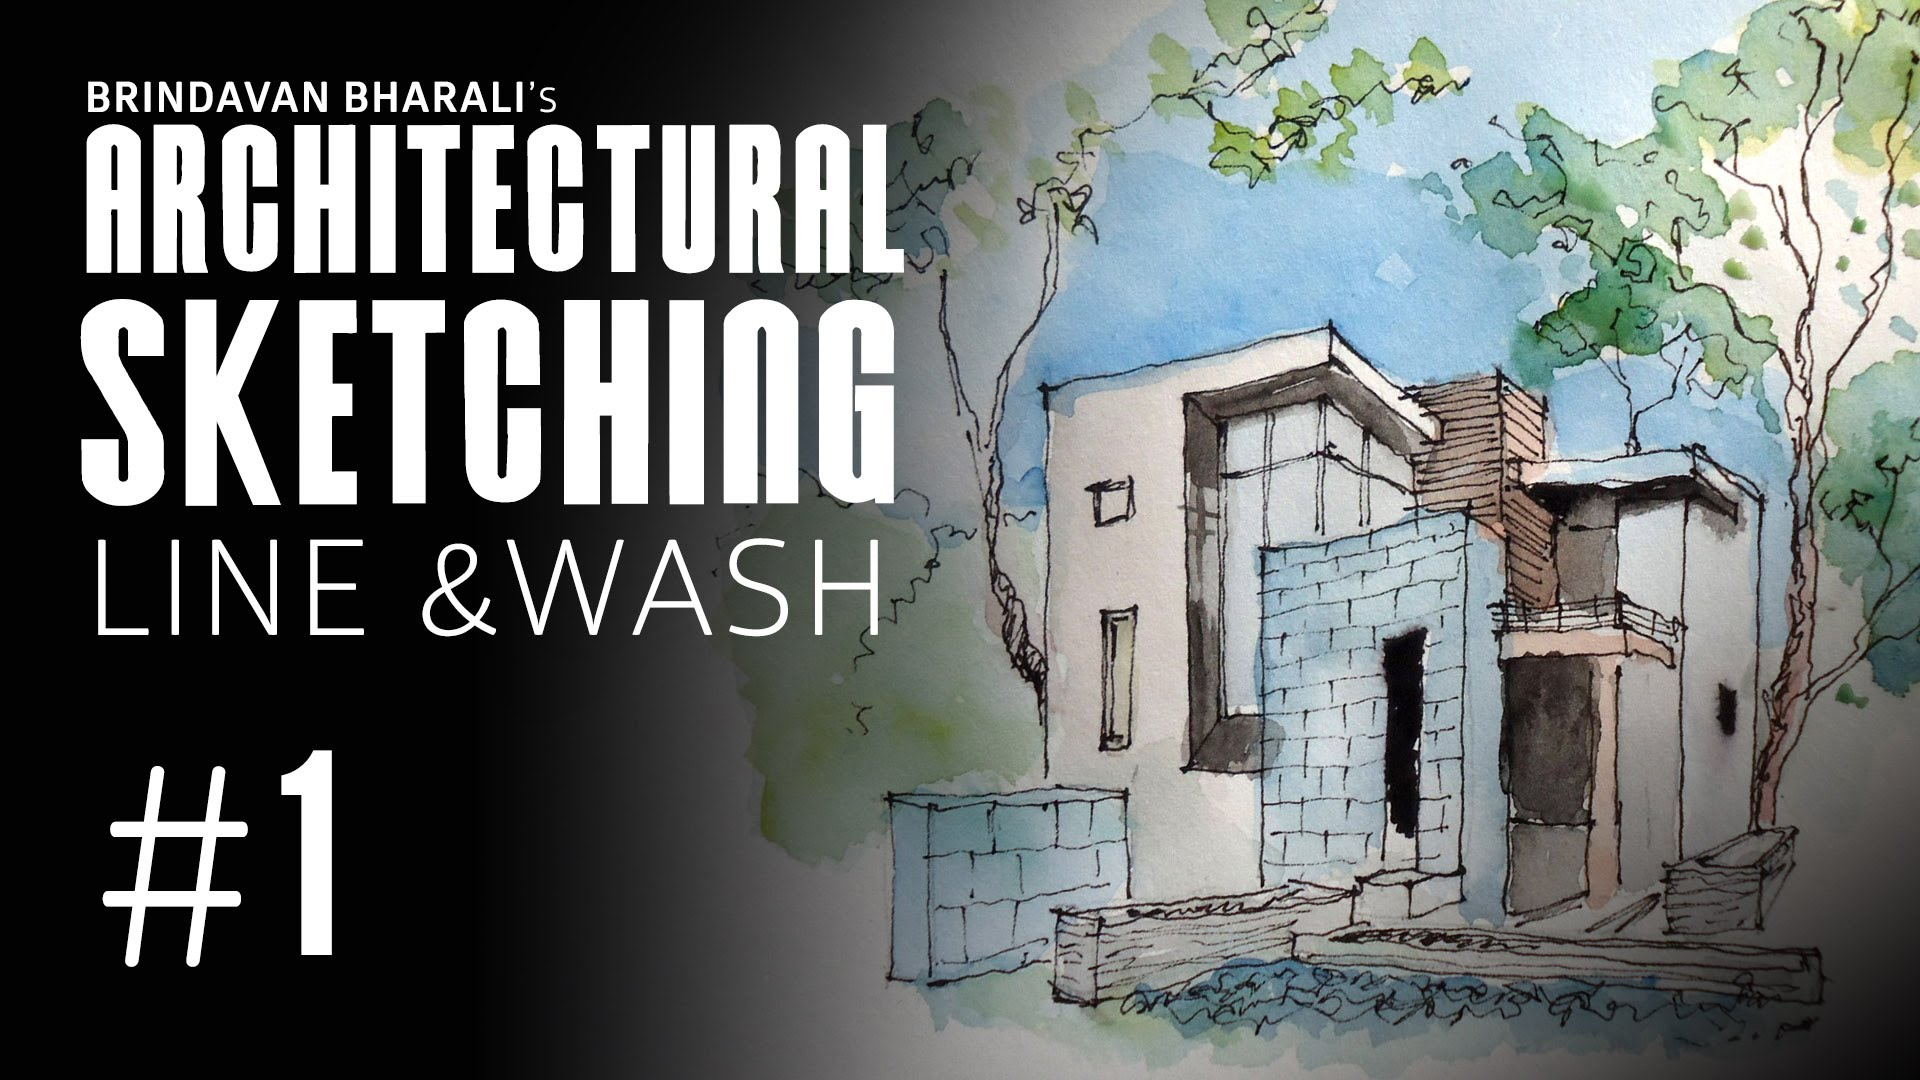 1920x1080 Architectural Sketch Watercolour Line And Wash By Brindavan